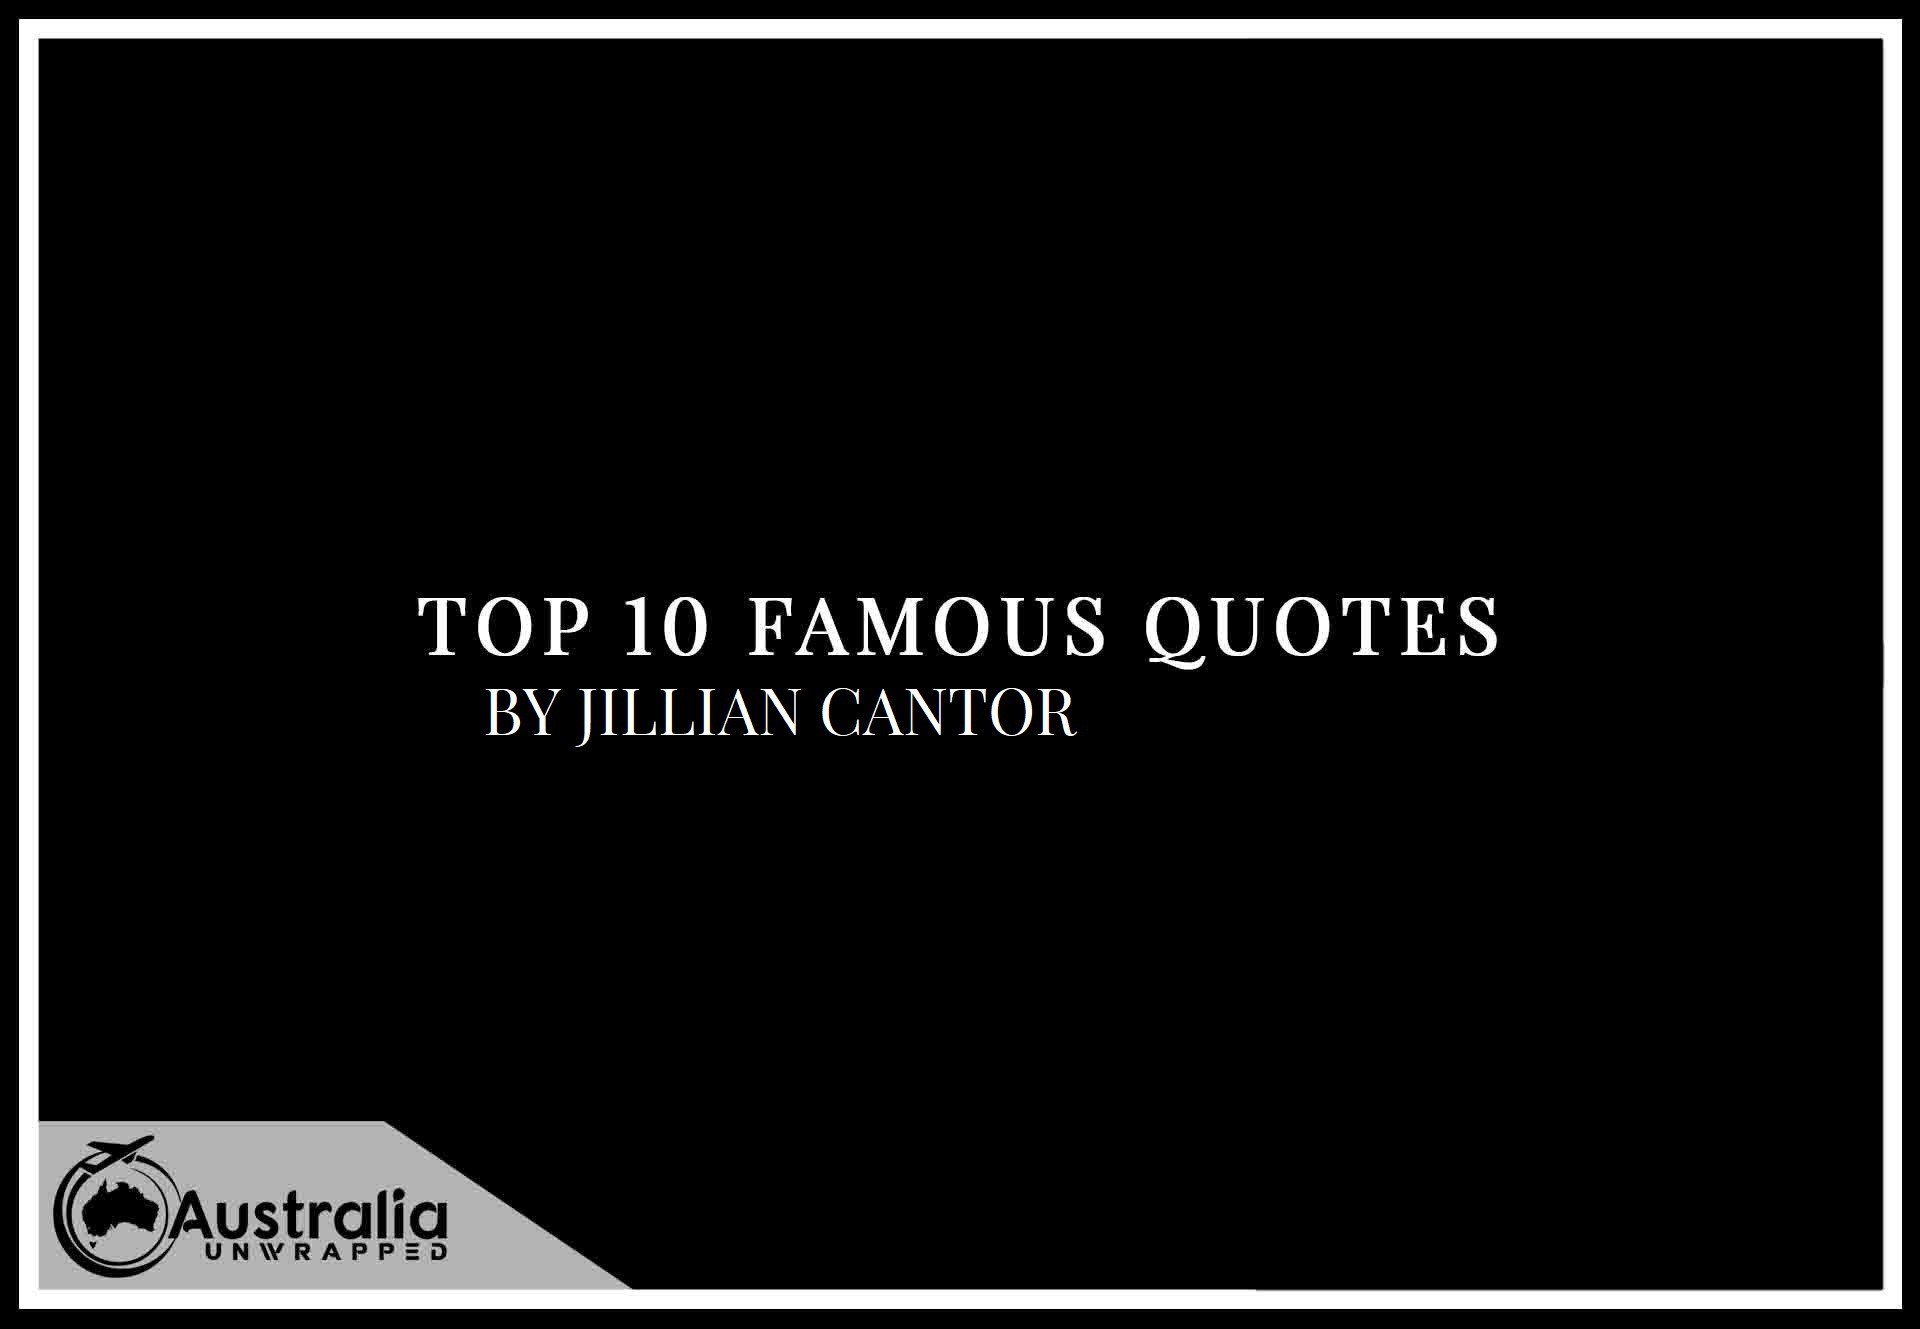 Top 10 Famous Quotes by Author Jillian Cantor